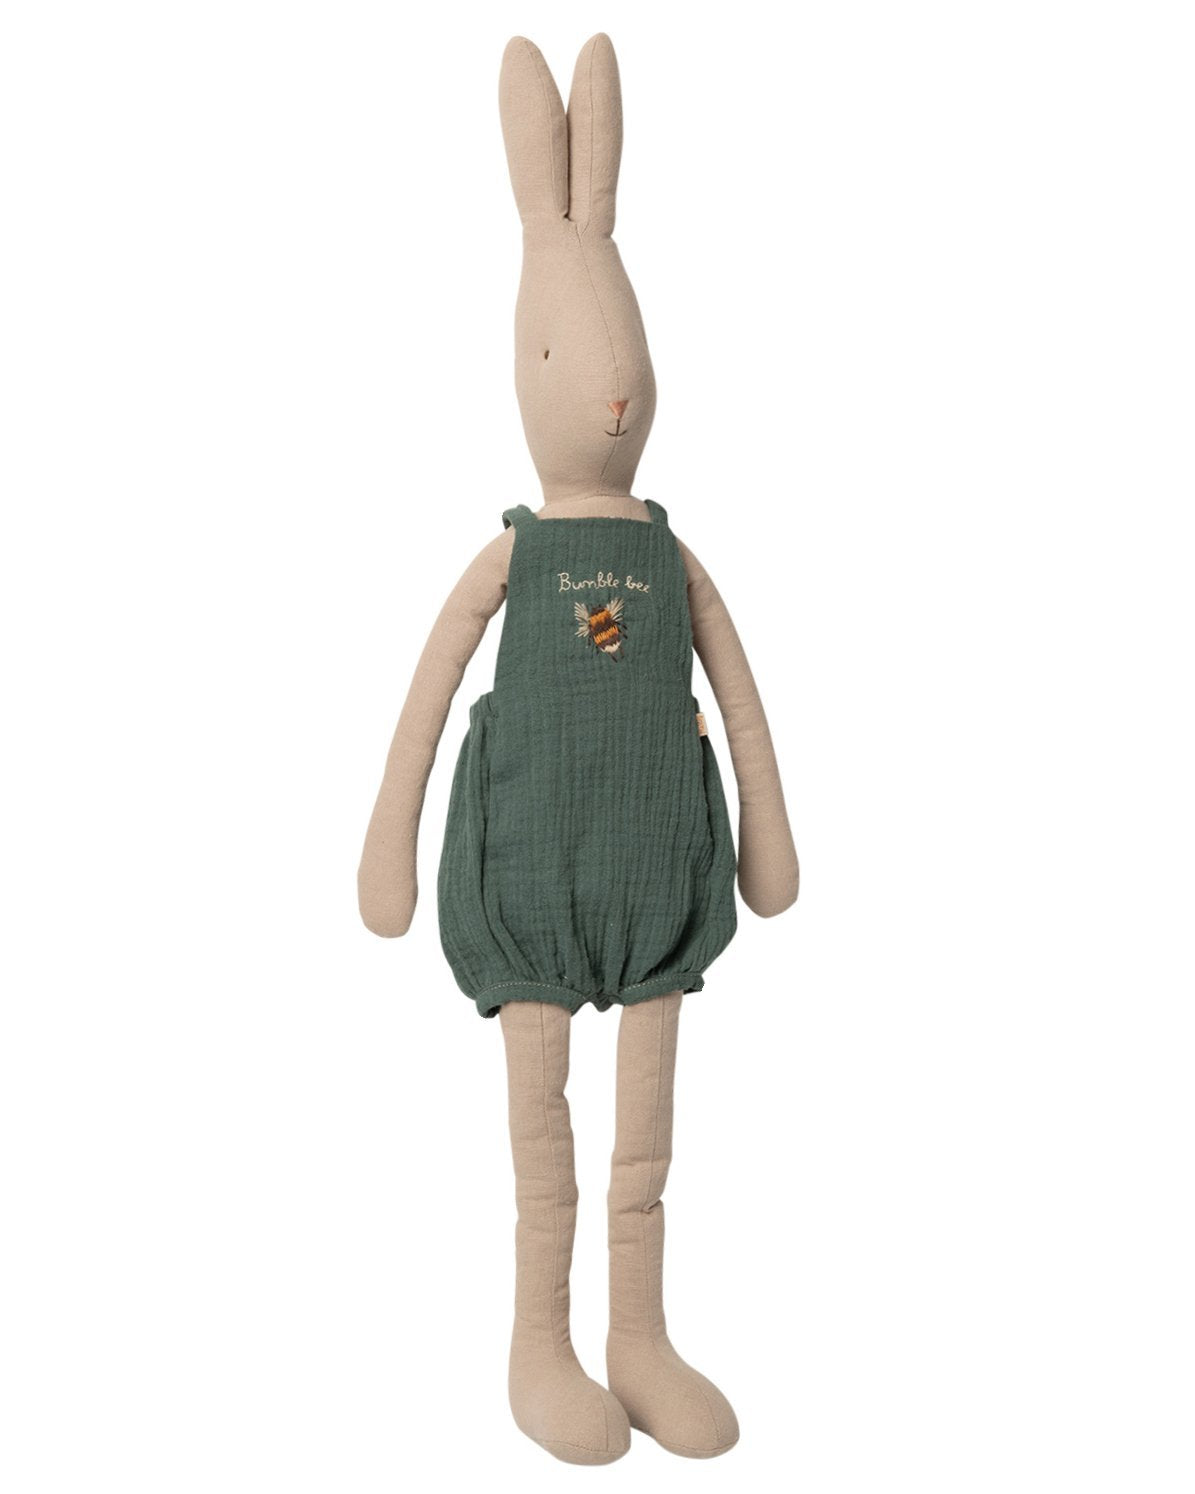 Little maileg play size 5 rabbit in overalls